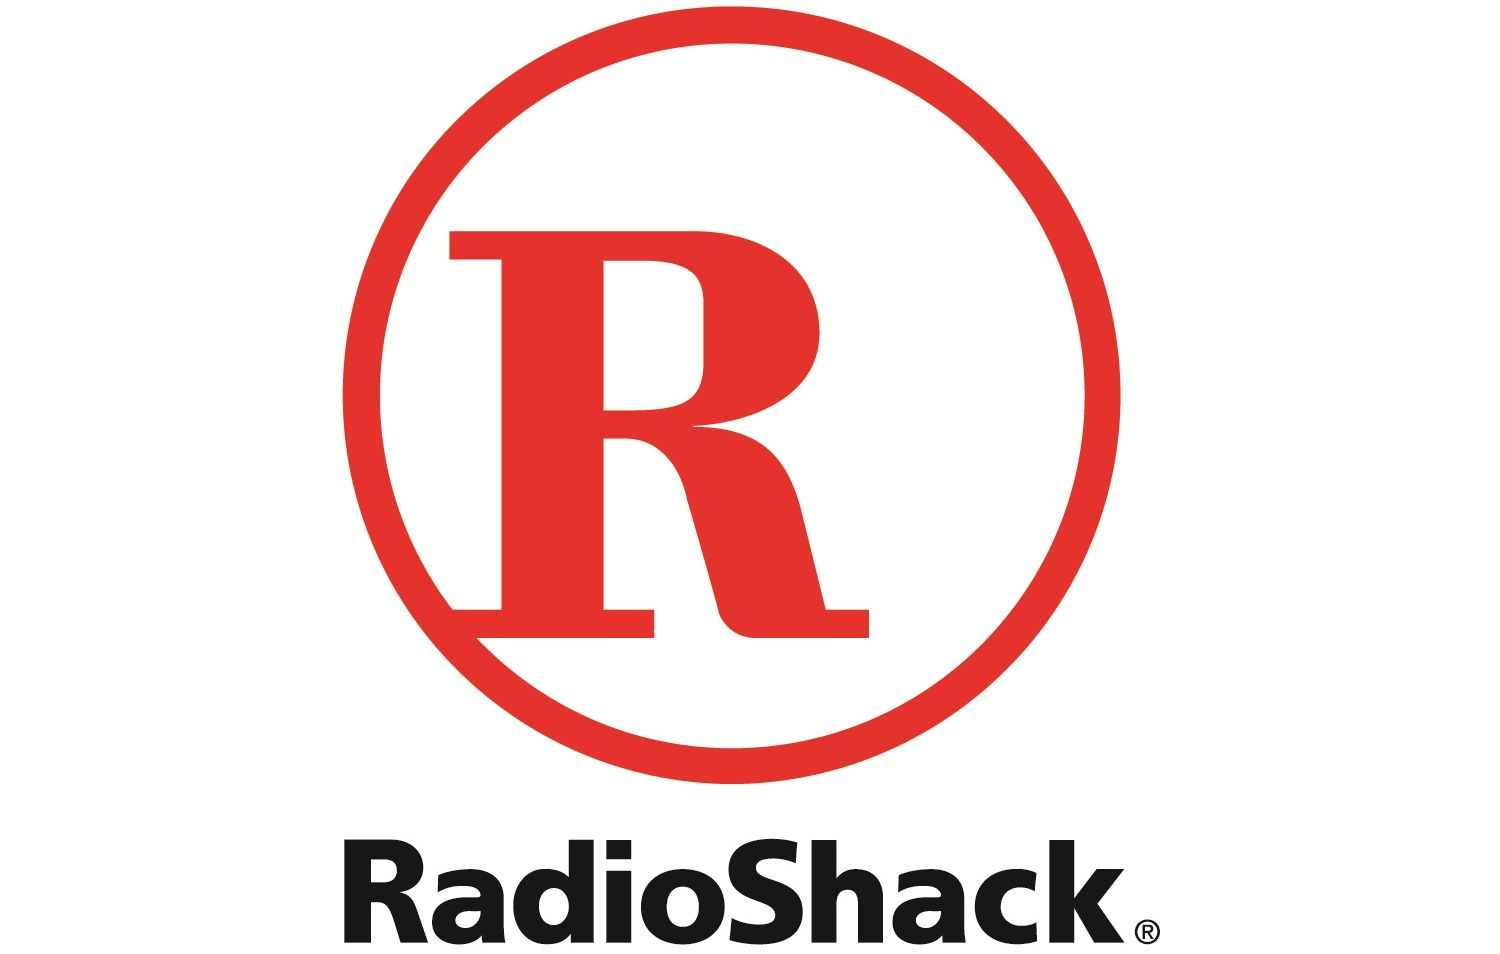 $10 off $25+ radio shack printable coupon now available! | my